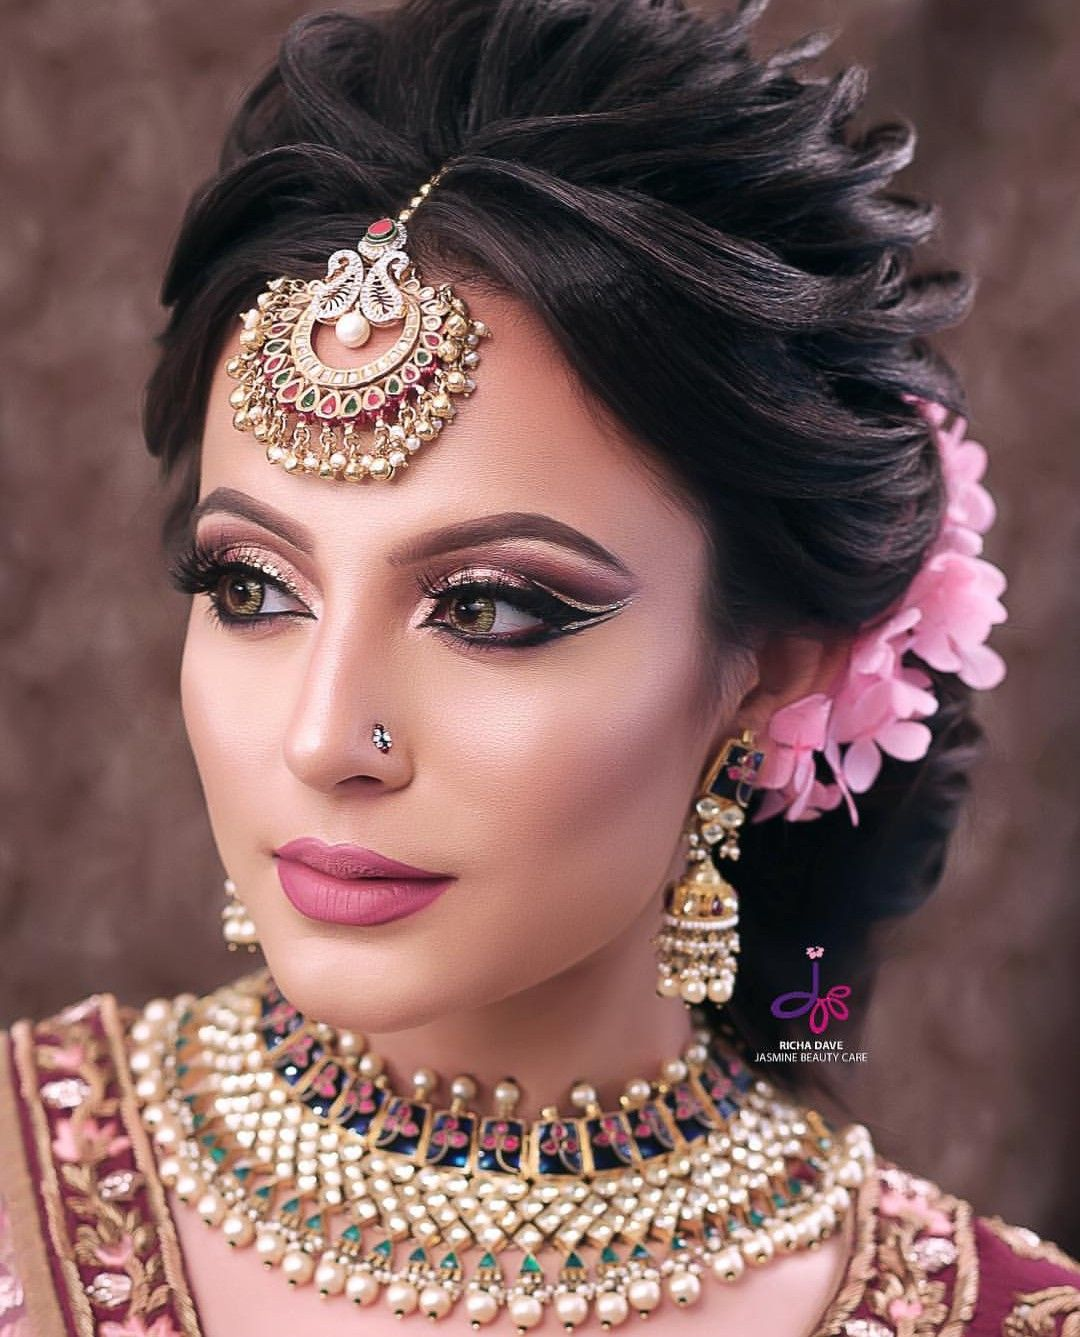 shikachand | indian wedding hairstyles